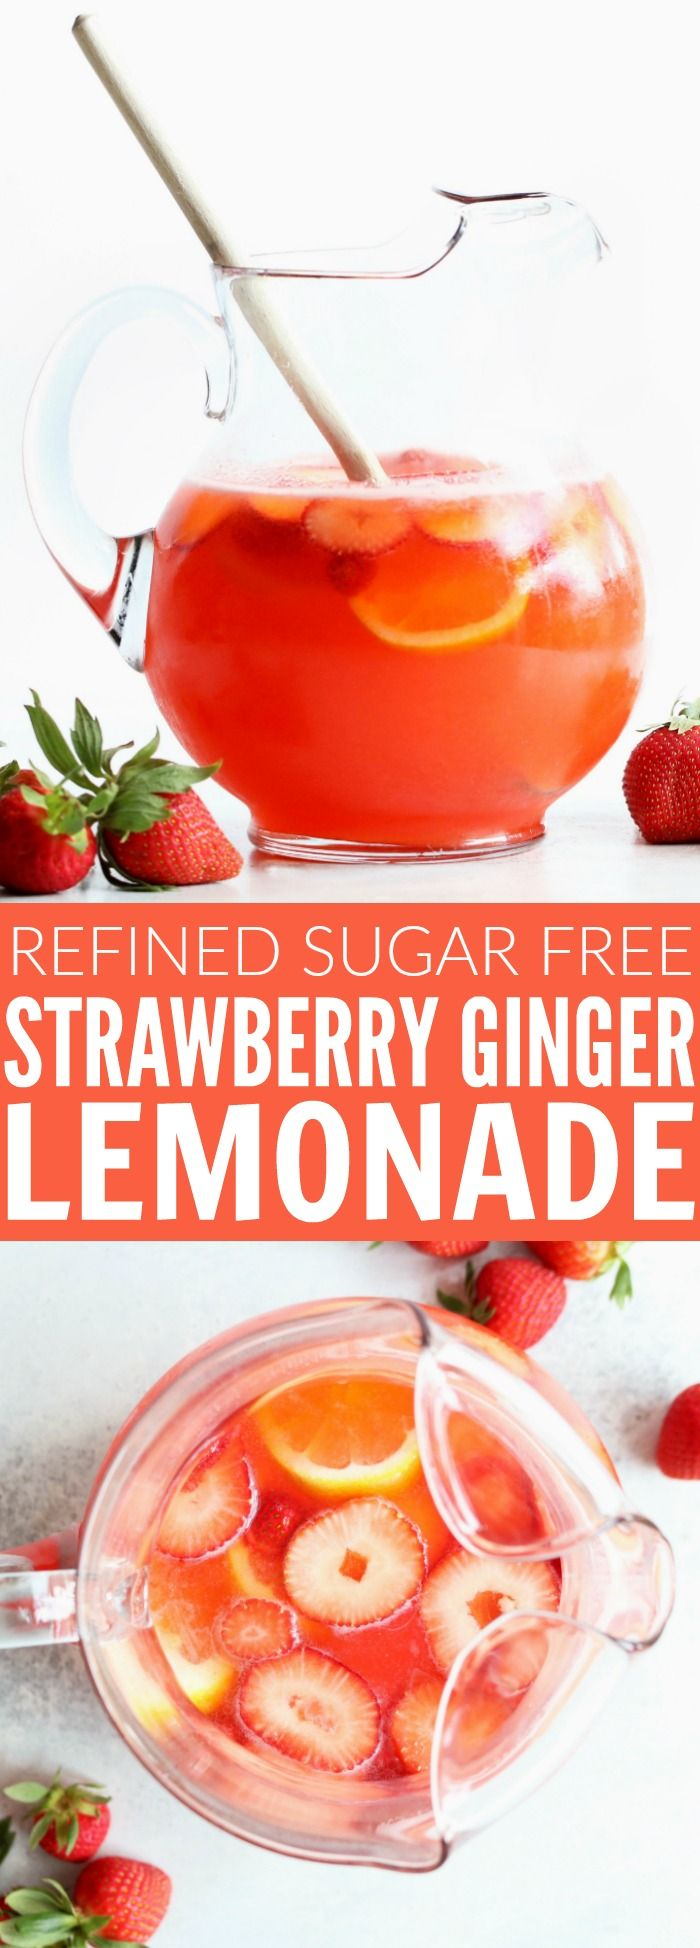 You guys are going to love this strawberry ginger lemonade!! It's refined sugar free, only a few, fresh ingredients, and perfect for a fun brunch, celebration, or any day of the week! thetoastedpinenut.com #sugarfree #lemonade #strawberry #ginger #beverage #drink #easter #brunch #bridalshower #babyshower